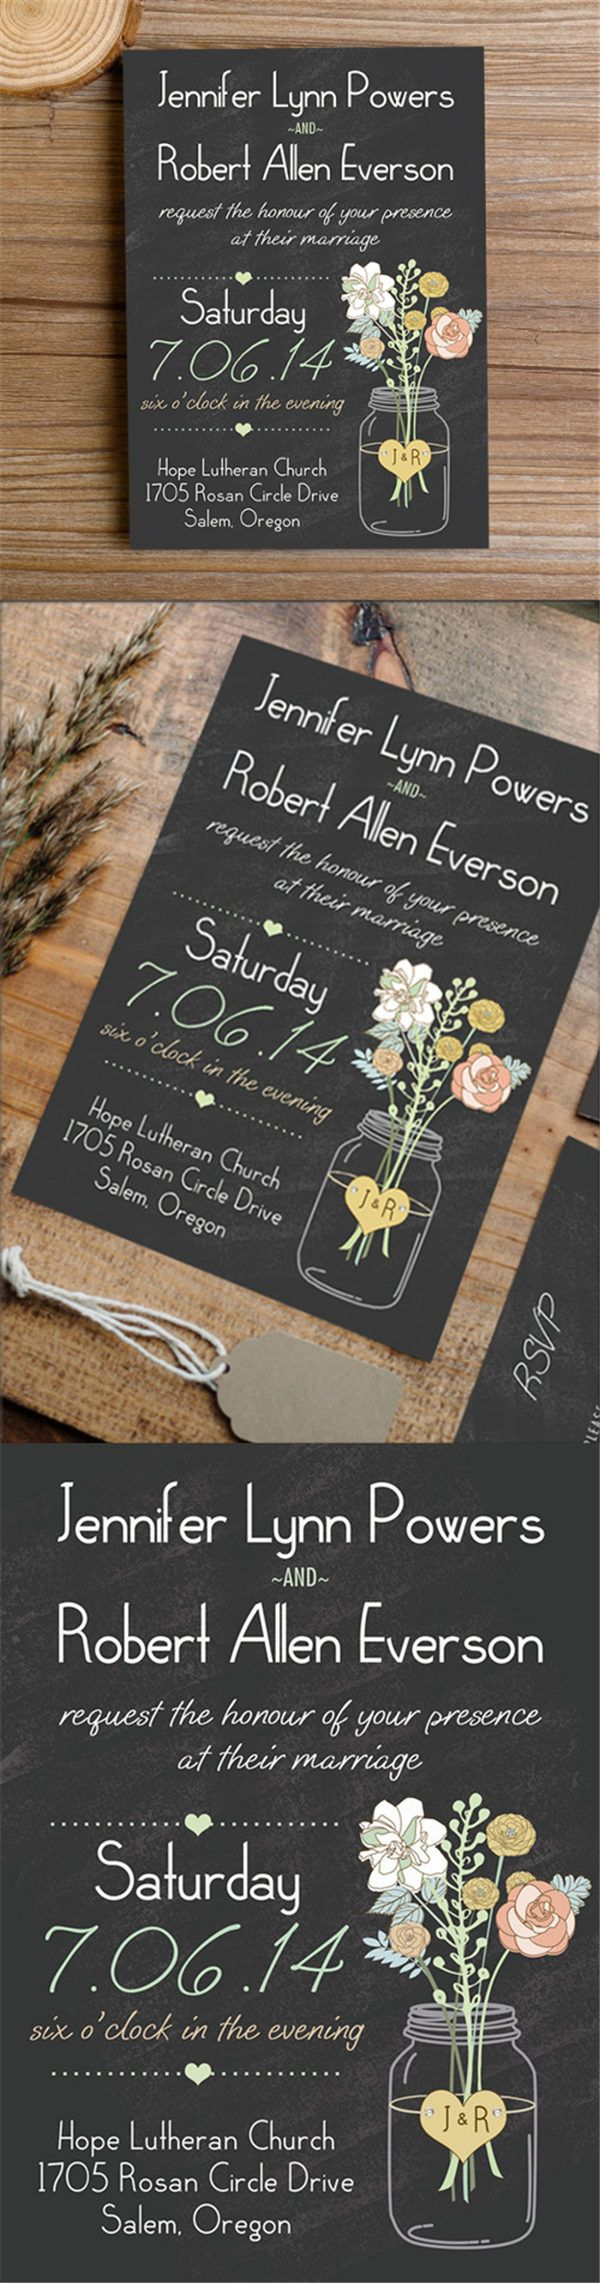 Best 25+ Cheap Wedding Invitations Ideas On Pinterest | Budget Wedding  Invitations, Budget Wedding Save The Dates And Budget Wedding Stationery